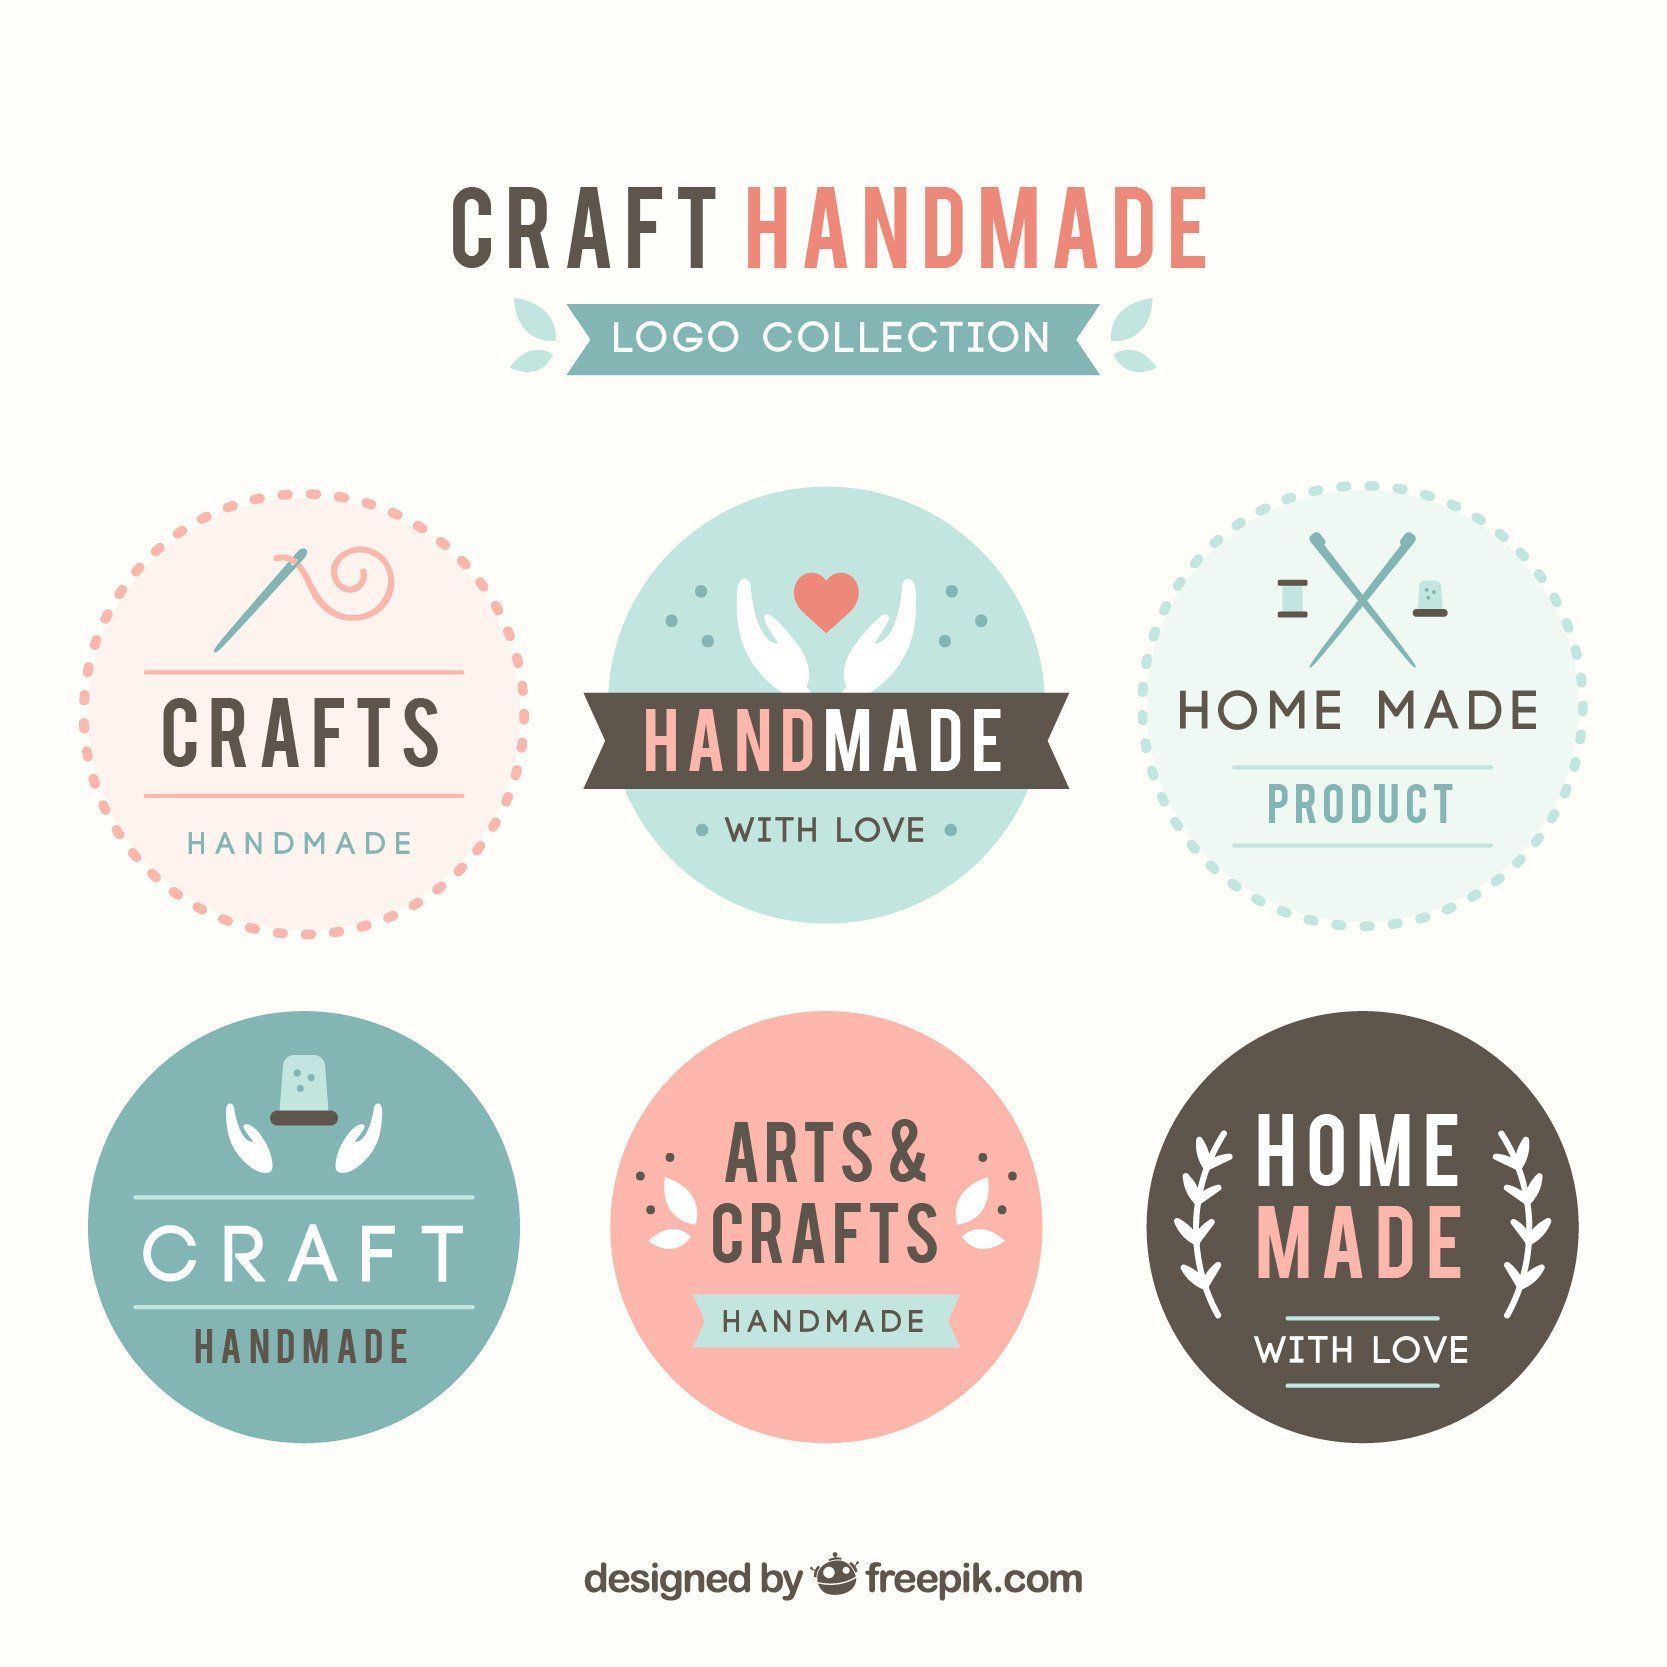 I'm offering a discount! Craft logo, Handmade logo